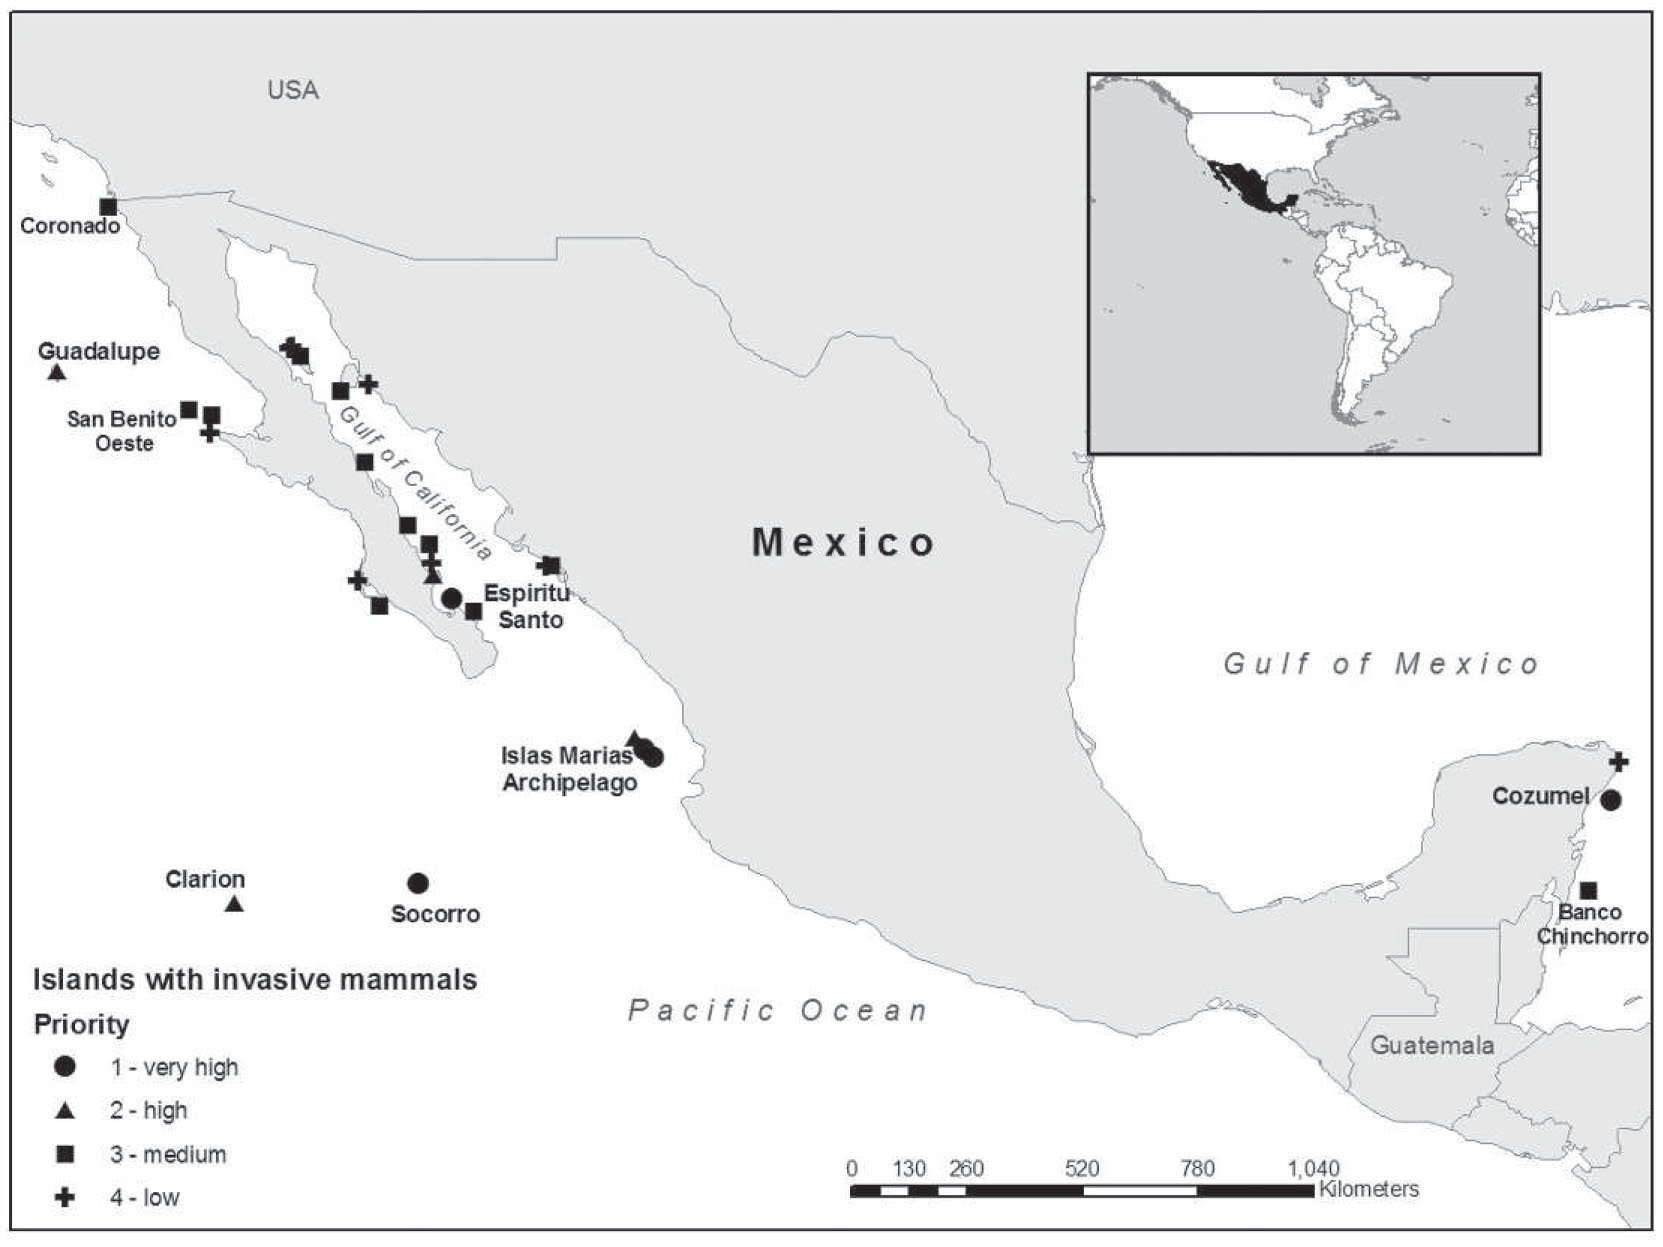 Prioritizing Restoration Actions for the Islands of Mexico